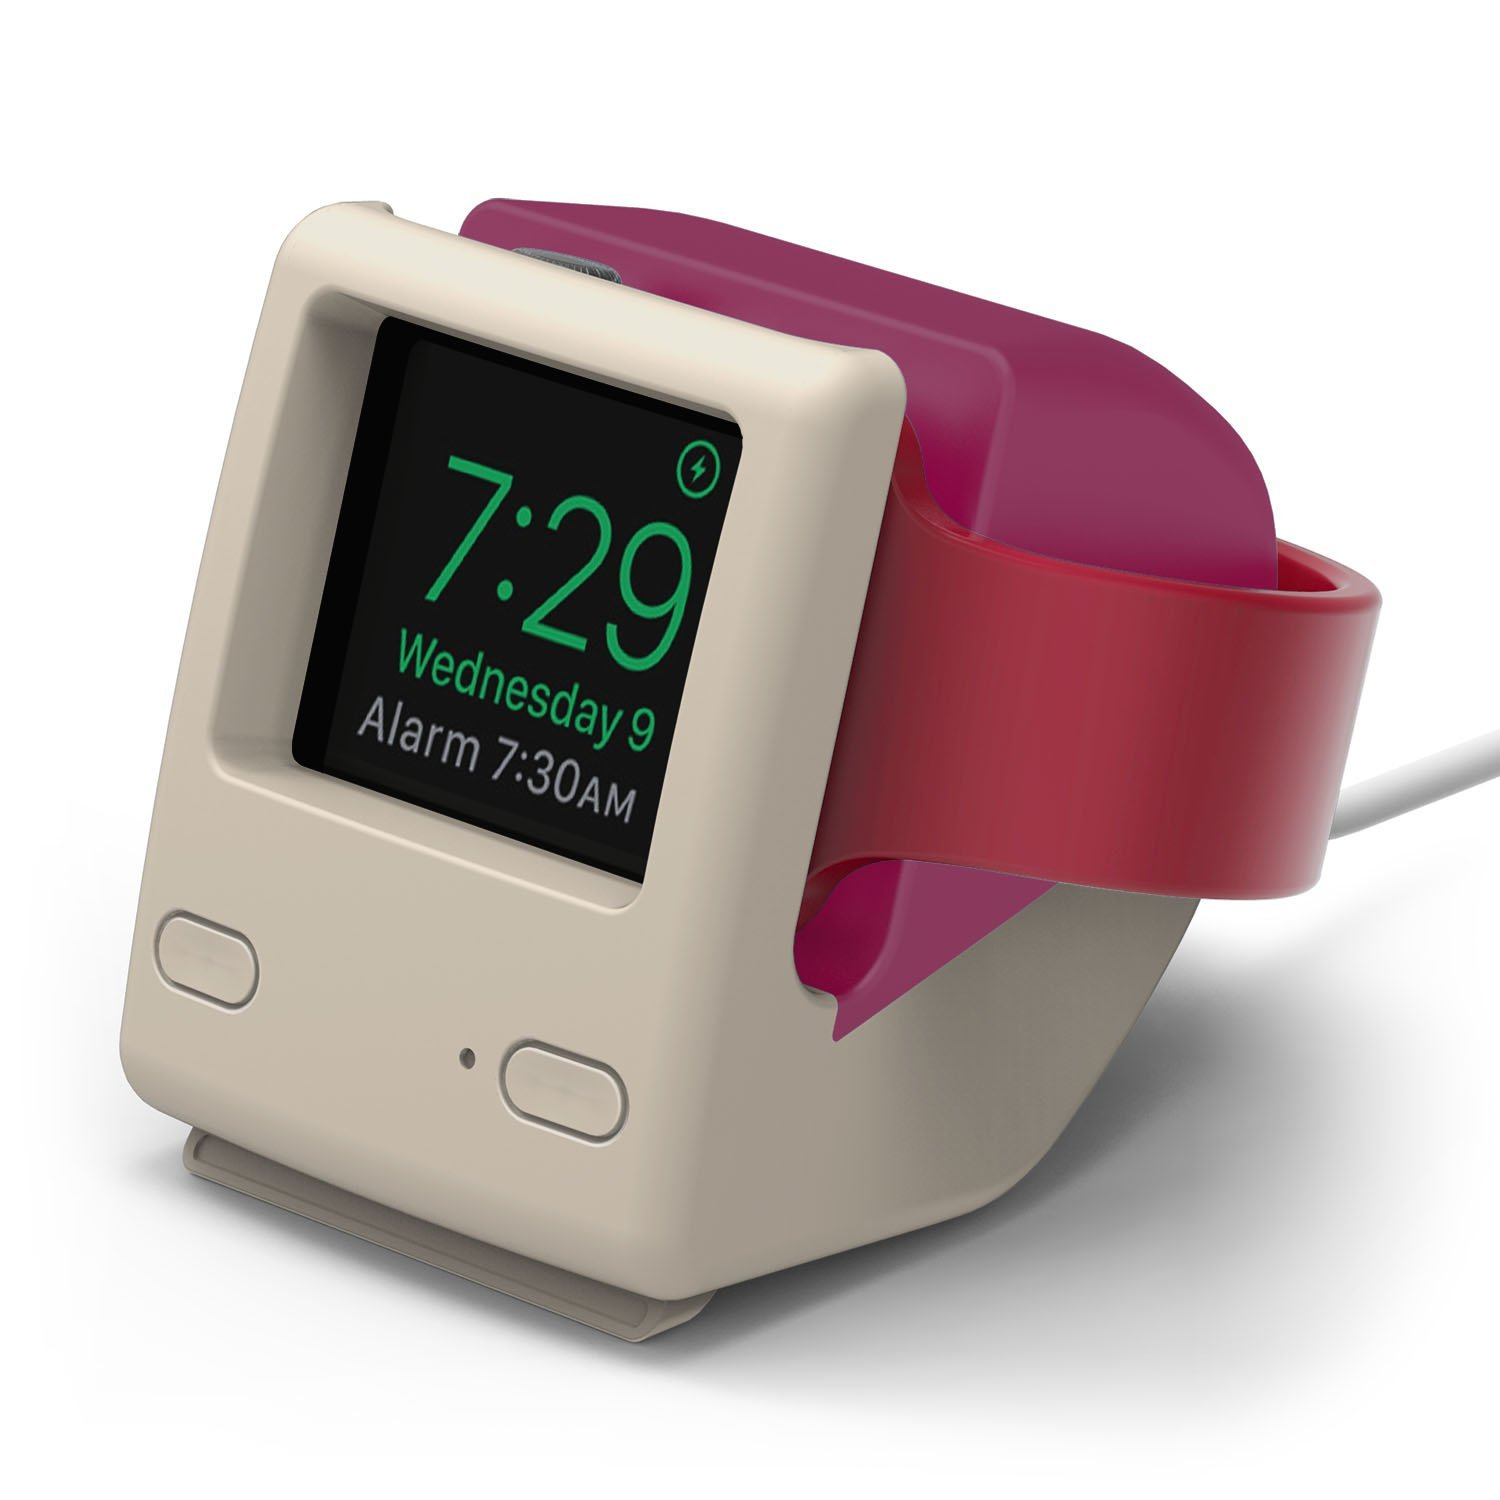 Bring out the nostalgia in your Apple Watch with the [Elago W4 Apple Watch stand](https://www.amazon.com/elago-Stand-Aqua-Pink-Nightstand/dp/B06Y254L9J/ref=as_li_ss_tl?linkId=30d45114f9838d2e124399209bb3ed2c&linkCode=sl1&tag=toolstoysdeals-20&ie=UTF8).